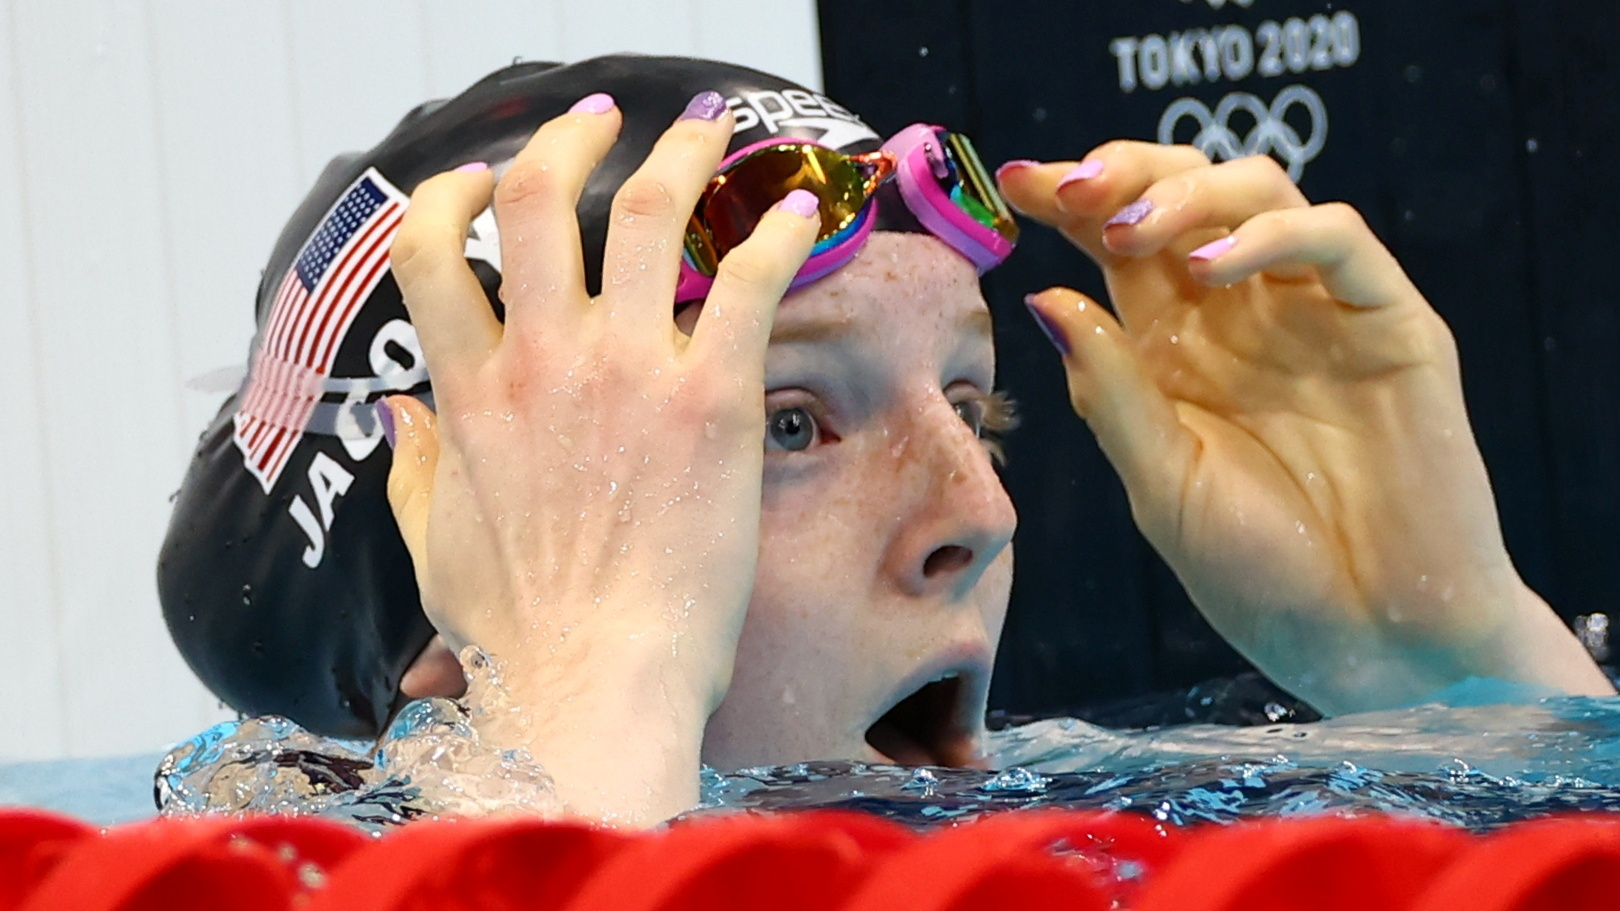 Tokyo 2020 Olympics - Swimming - Women's 100m Breaststroke - Final - Tokyo Aquatics Centre - Tokyo, Japan - July 27, 2021.  Lydia Jacoby of the United States reacts after winning the gold medal REUTERS/Kai Pfaffenbach